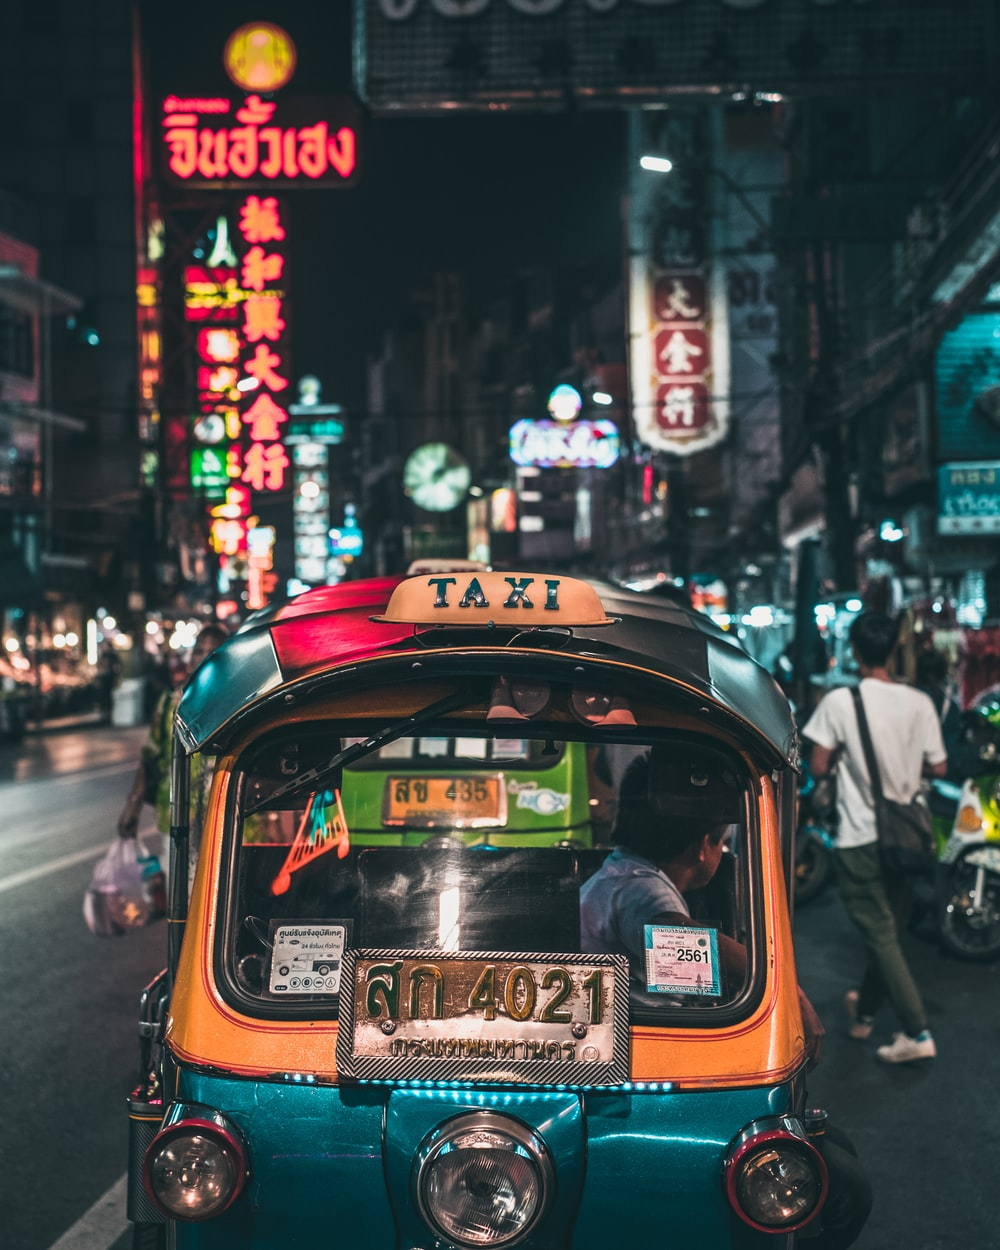 yellow taxi cab on the street during night time